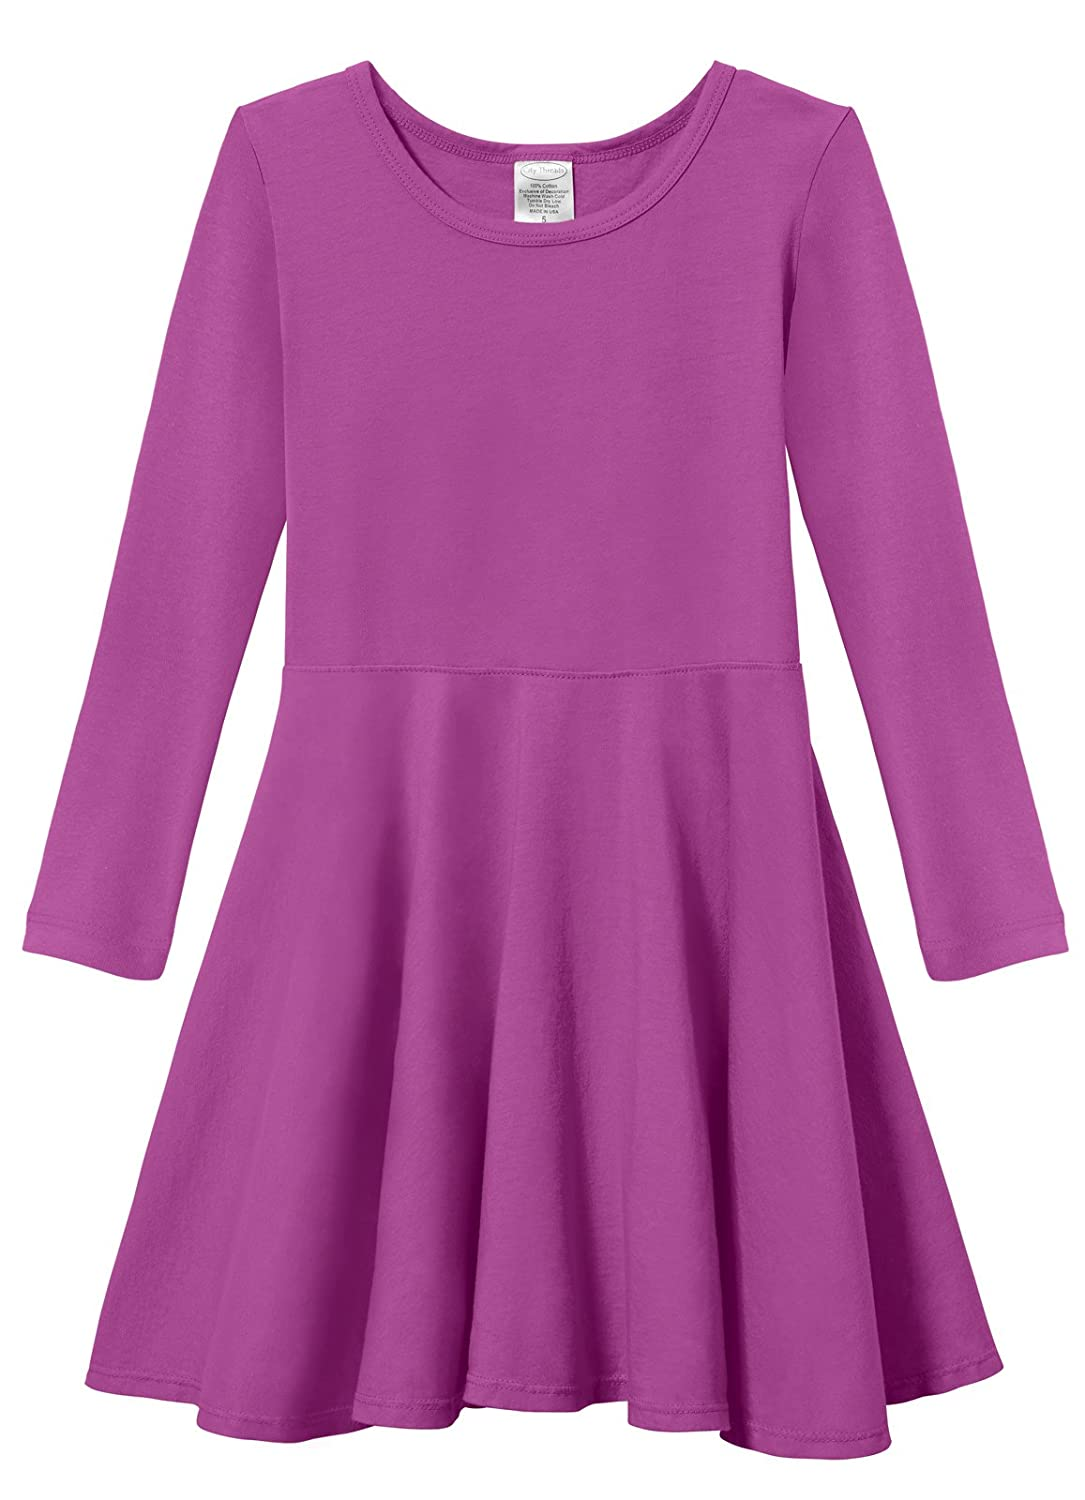 City Threads Girls Cotton Long Sleeve Twirly Skater Party Dress